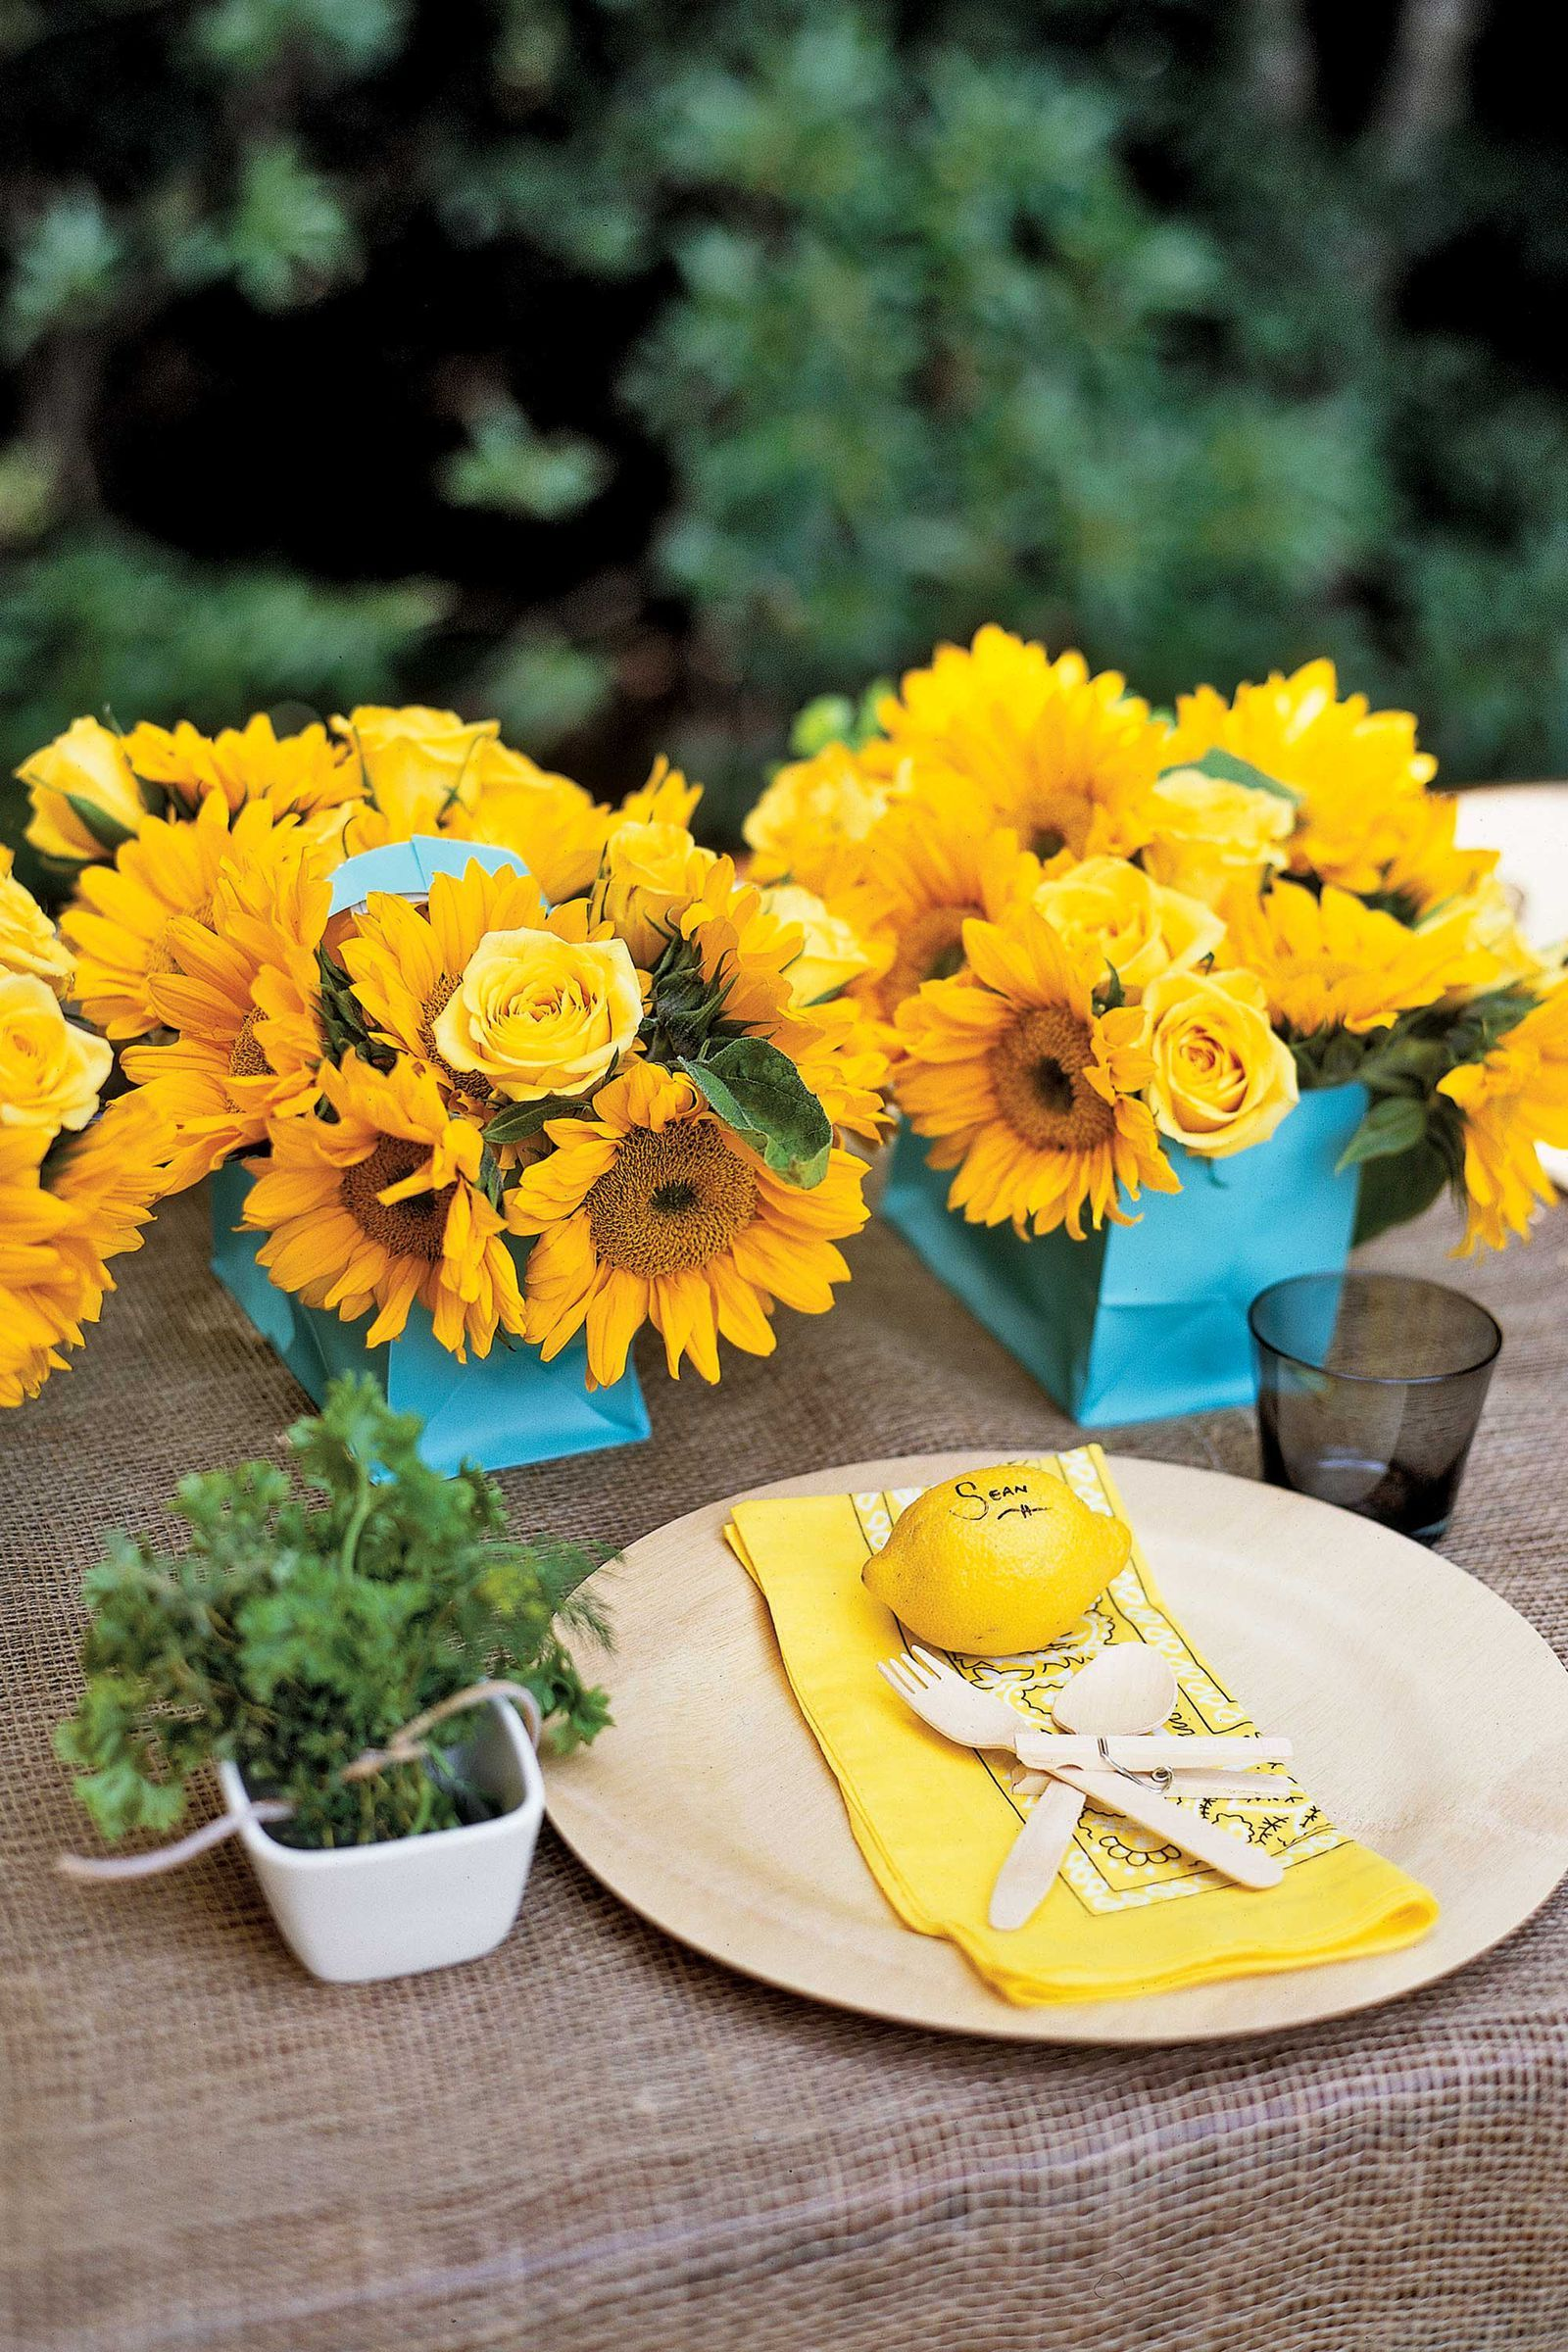 Lemon Place Cards And Sunflowerscountryliving